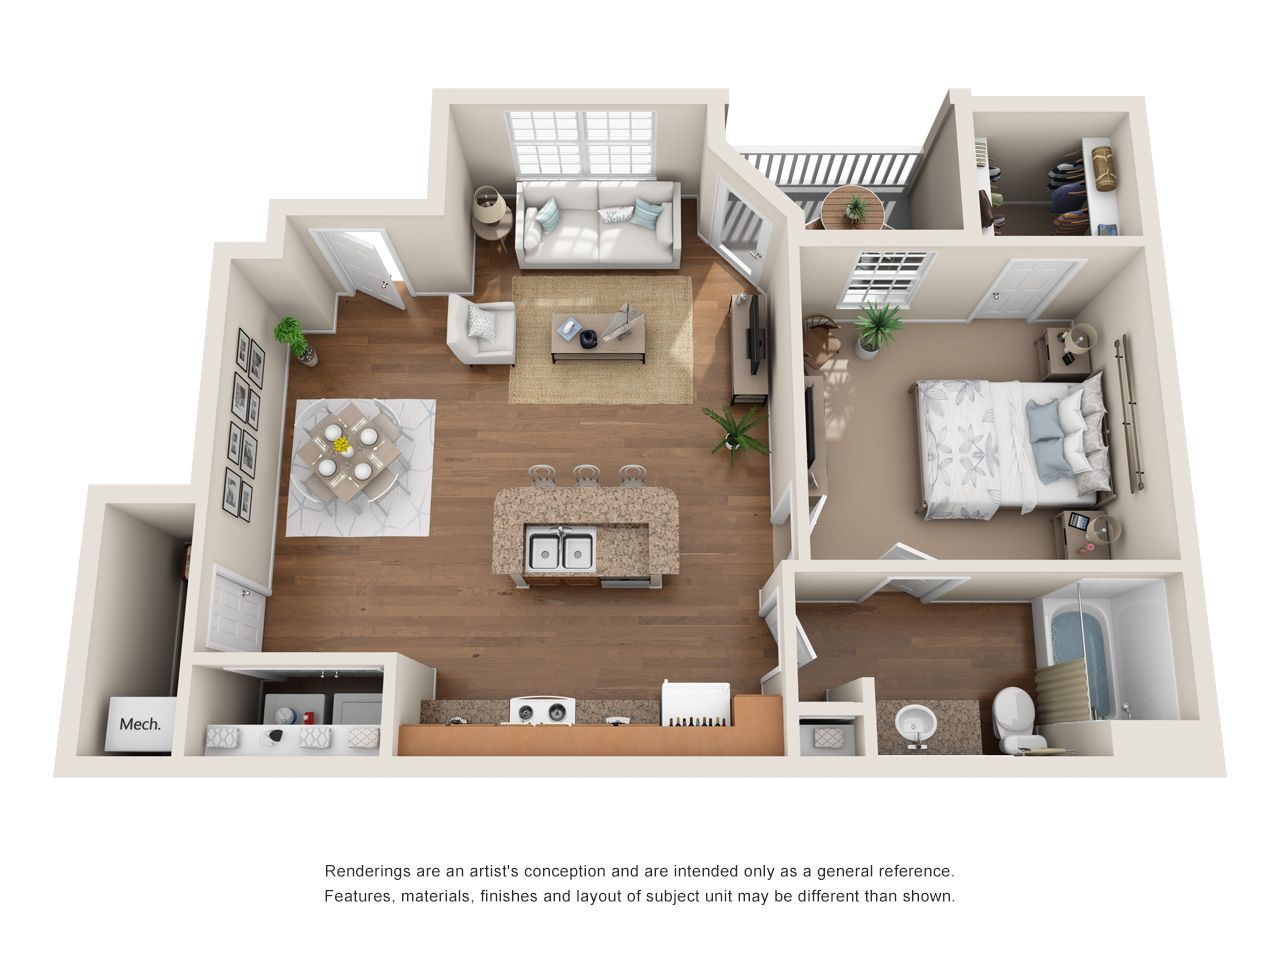 Studio, One, Two and Three Bedroom Apartments in Antioch